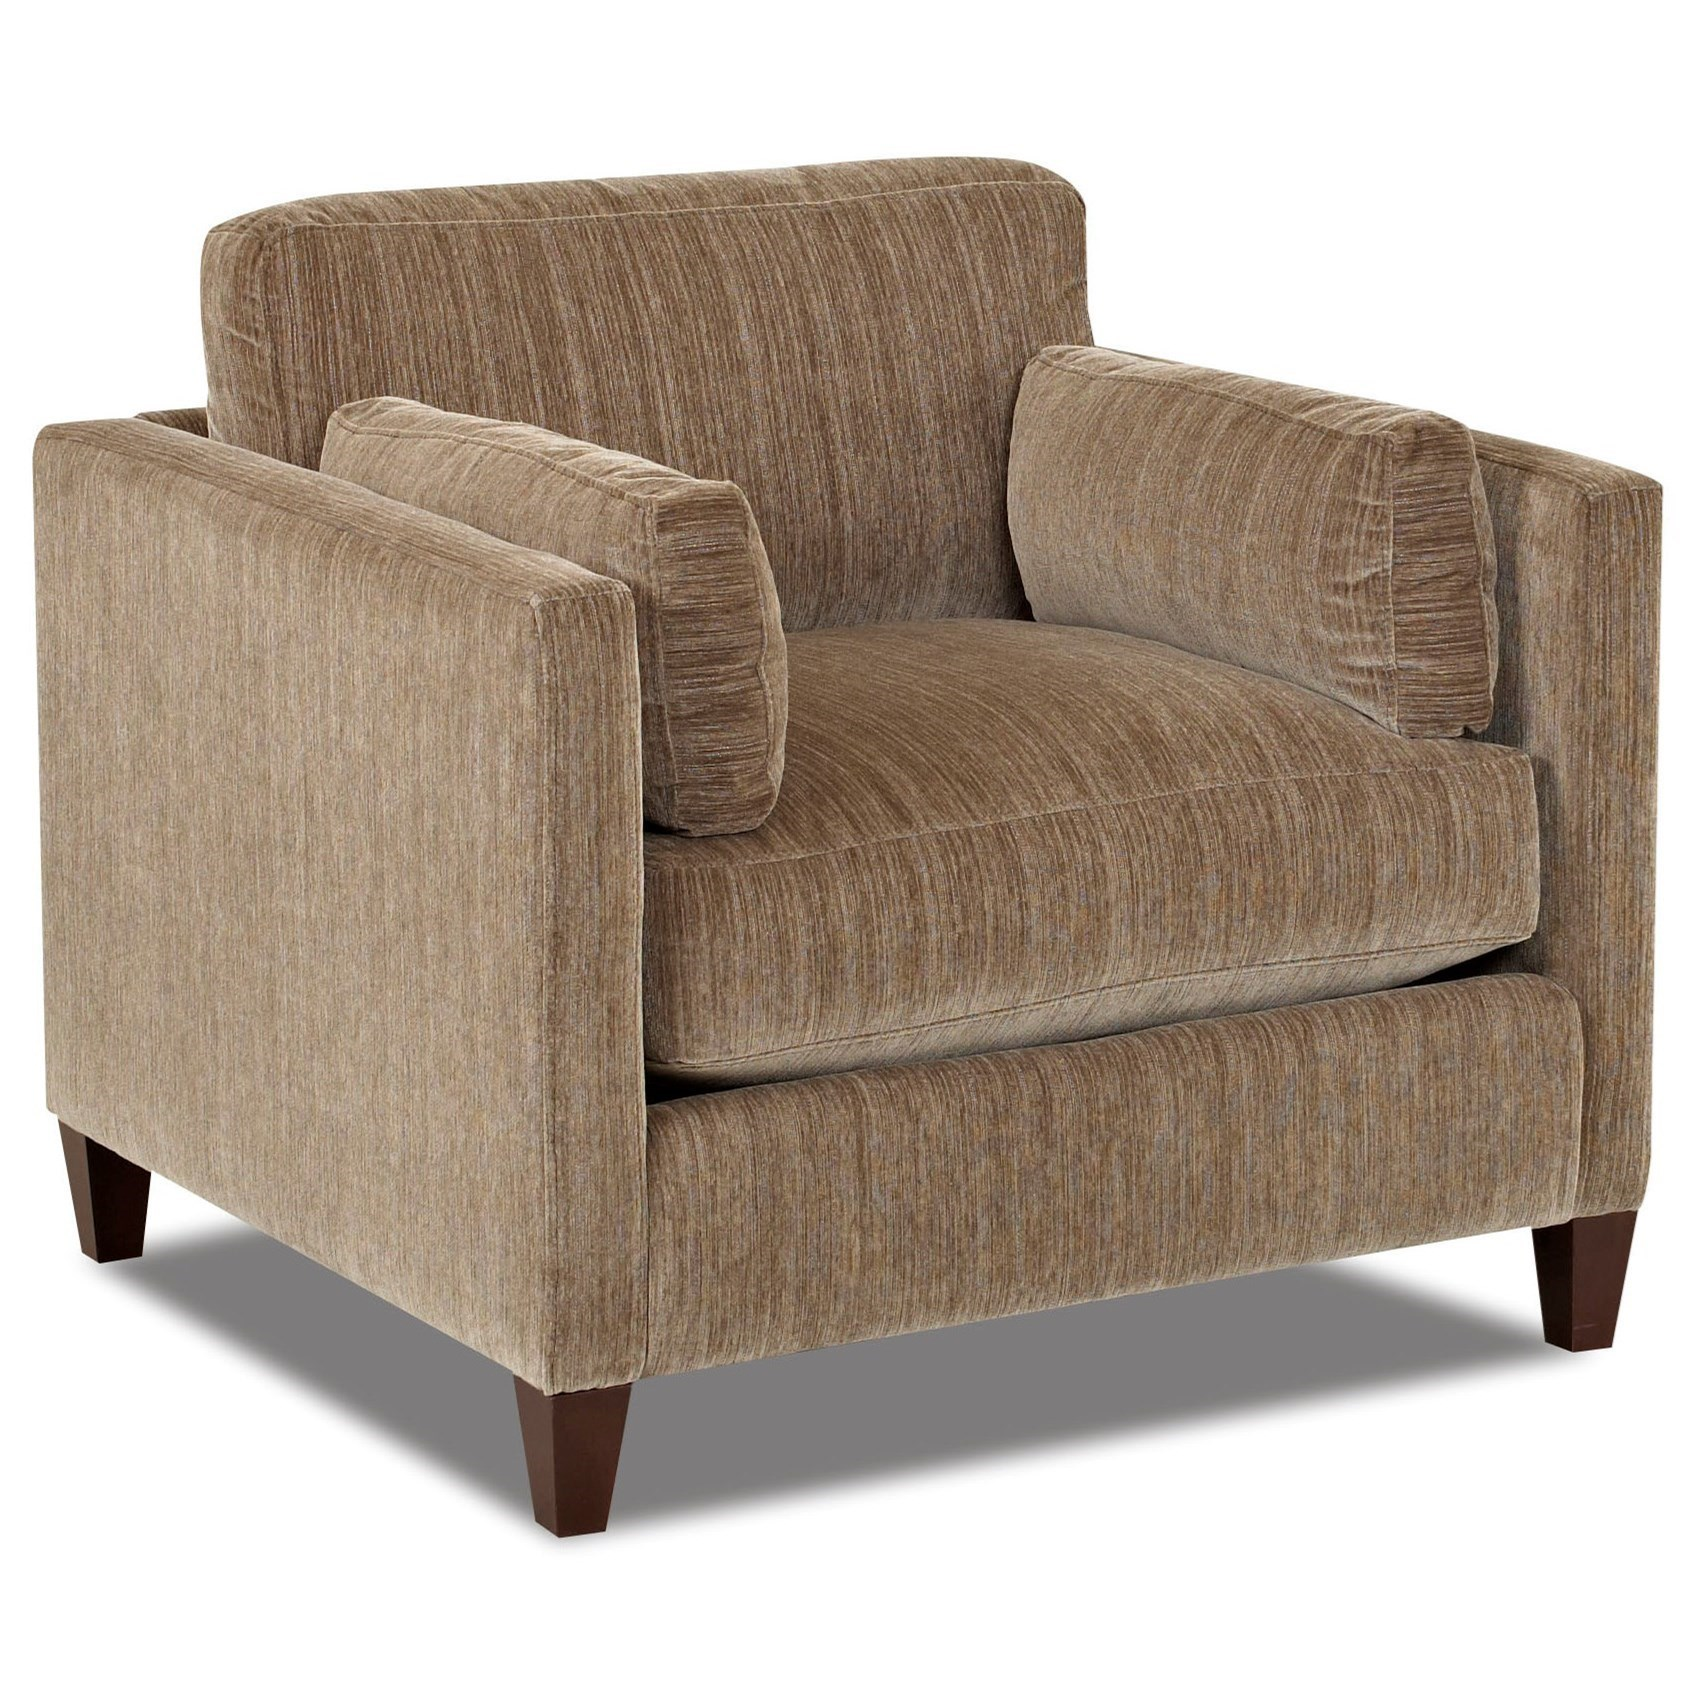 Home Living Room Furniture Upholstered Chairs Klaussner Jordan Chair.  Klaussner JordanChair